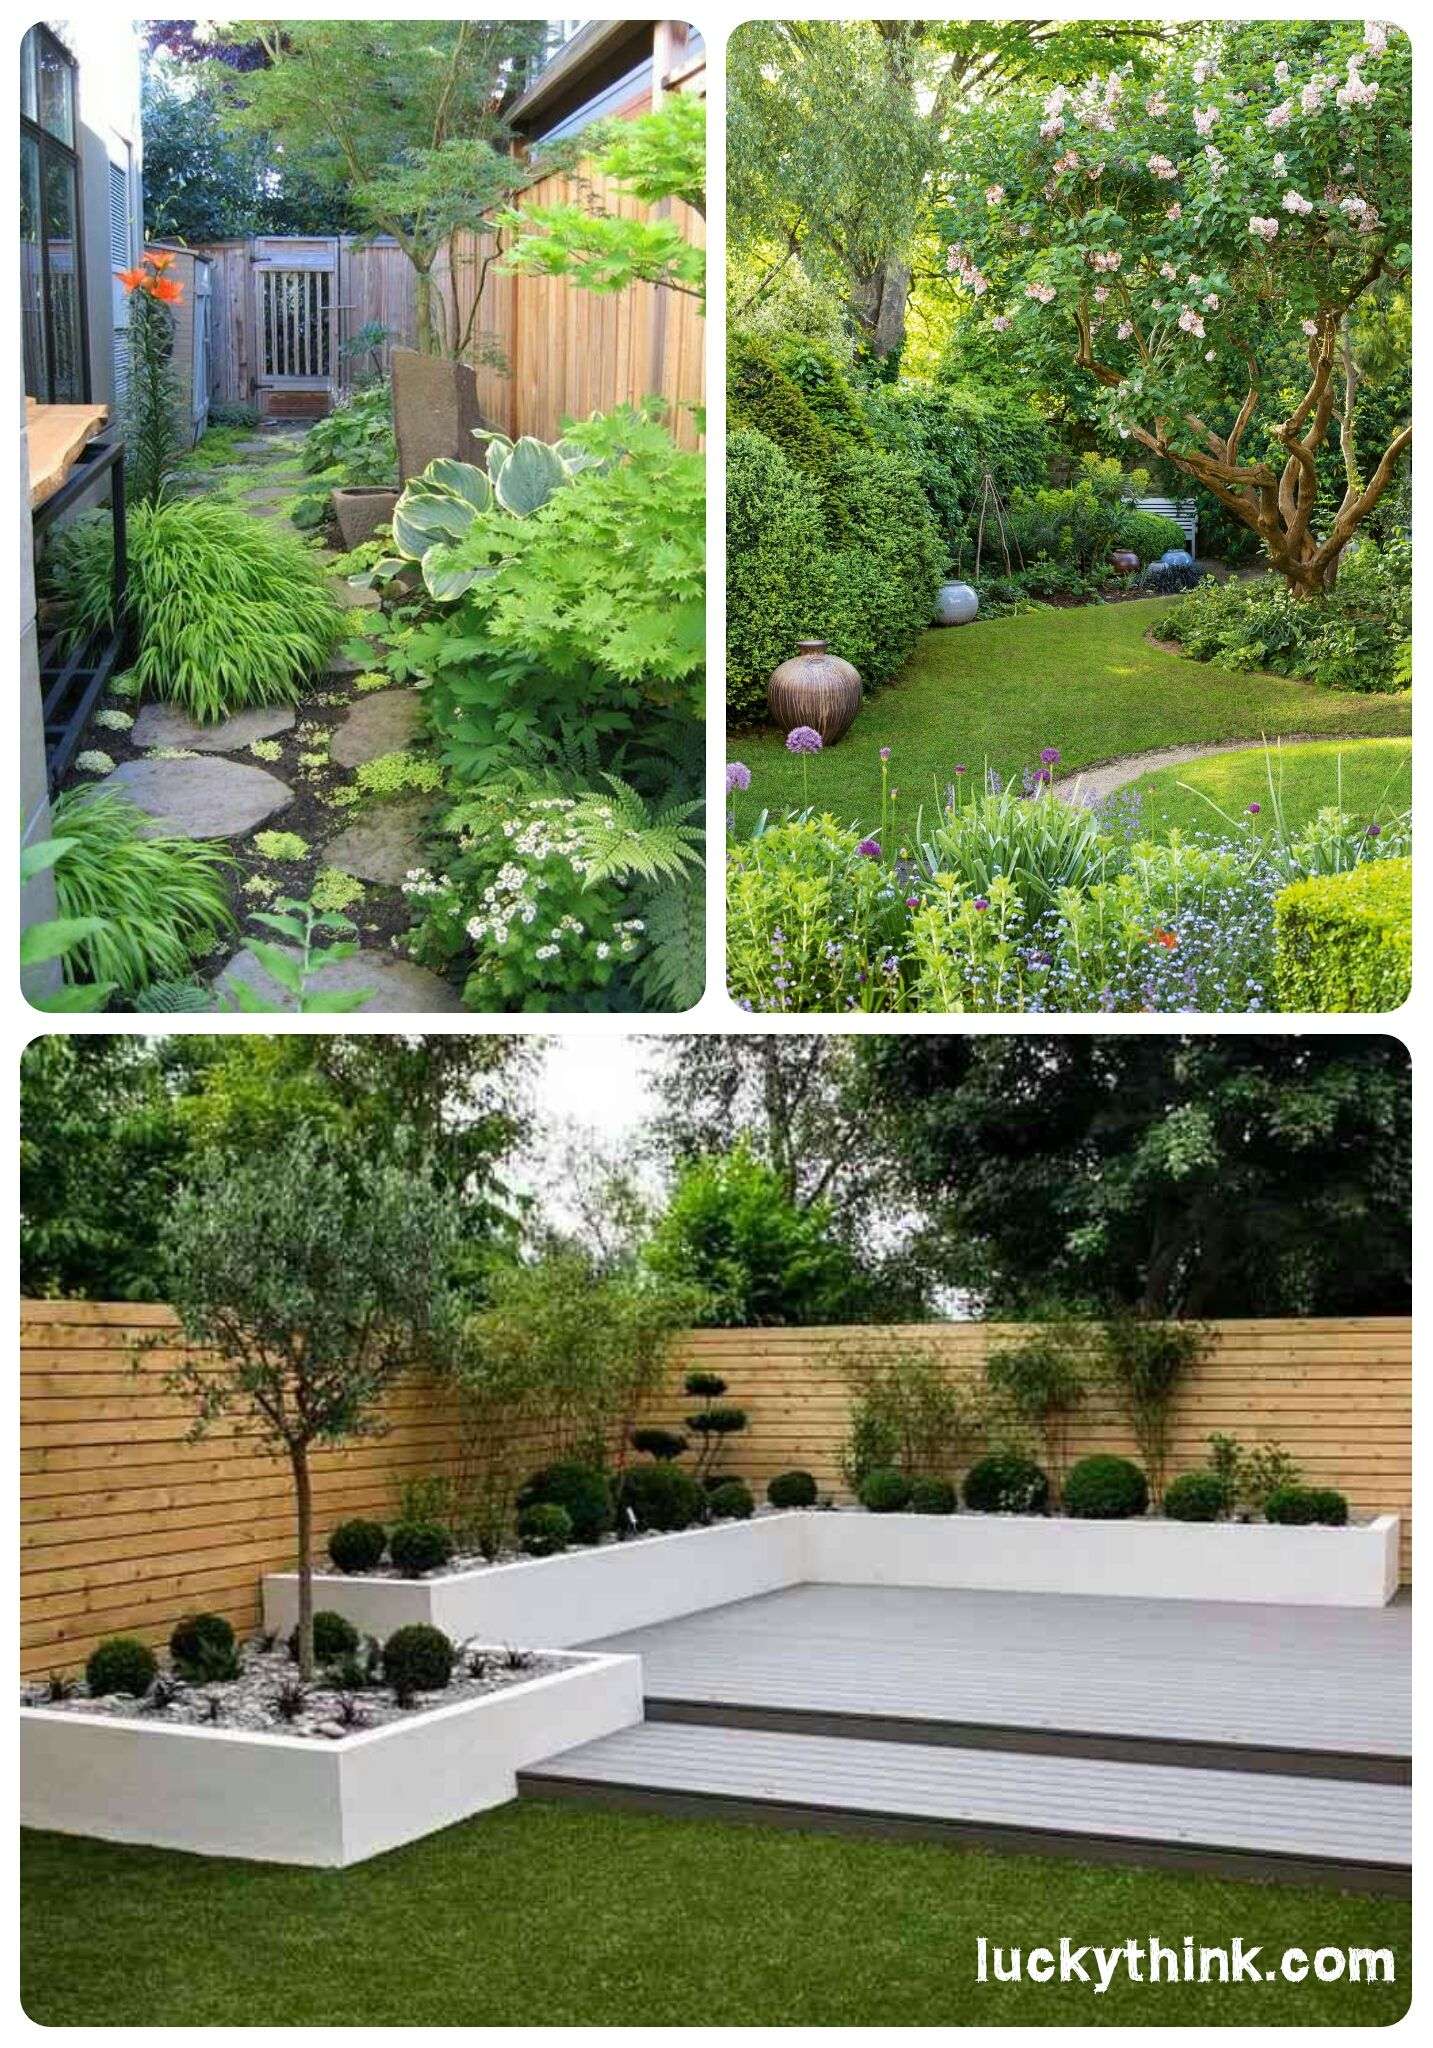 Some Examples Of Landscaping Ideas That Can Be Applied On Your